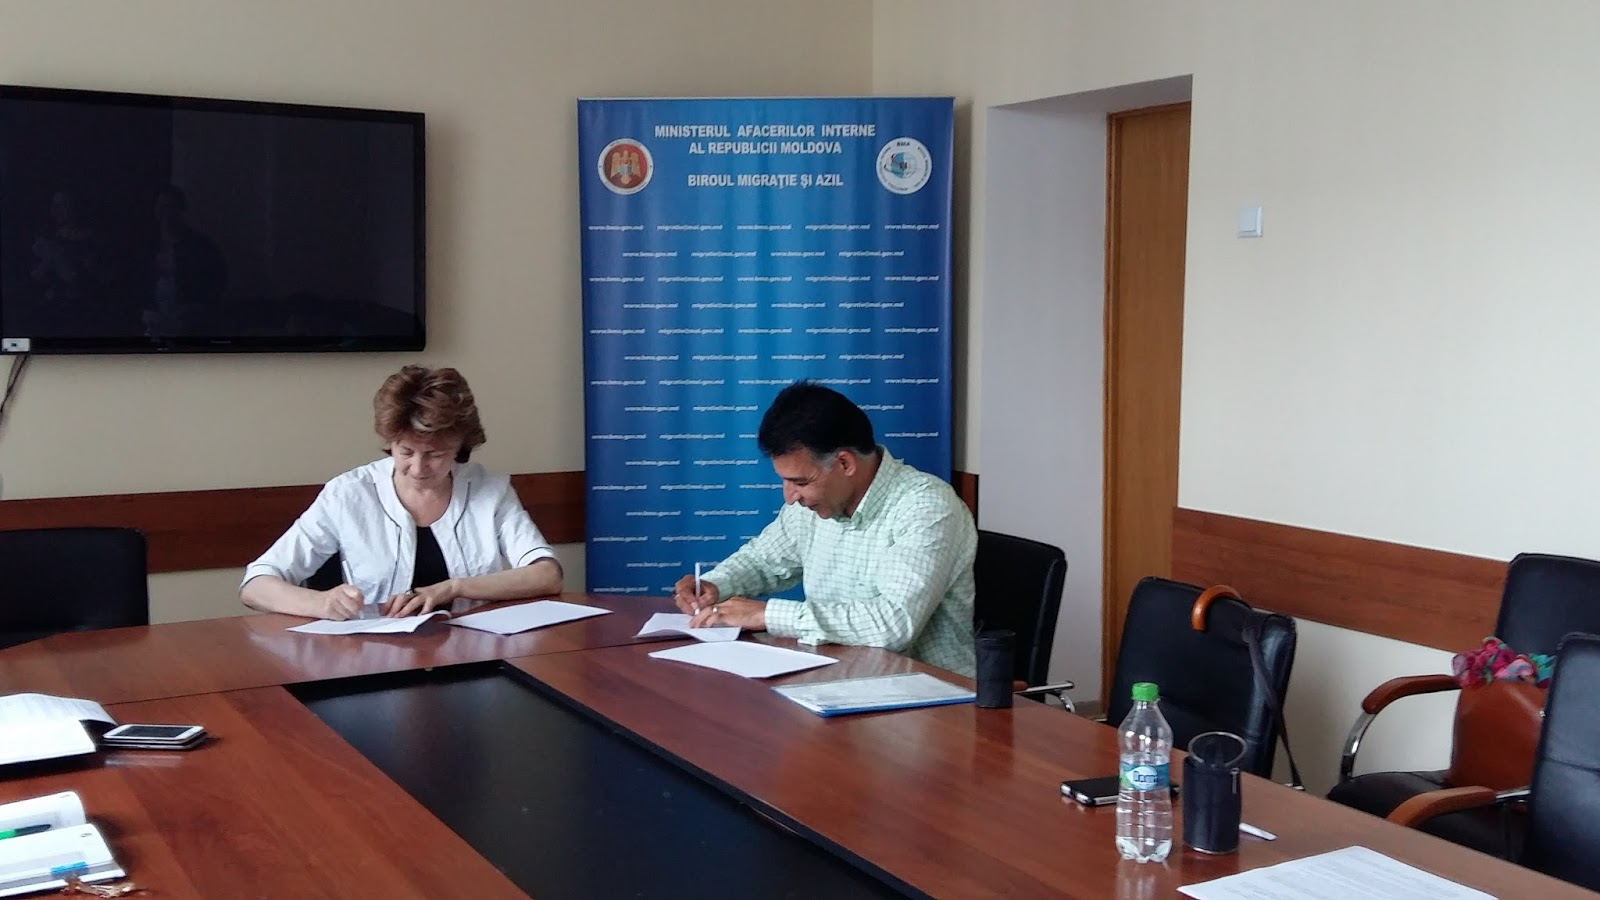 Ngo charity centre for refugees 2016 collaboration agreement with the bureau of migration and asylum enhancing integration of refugees through partnership programme stopboris Image collections